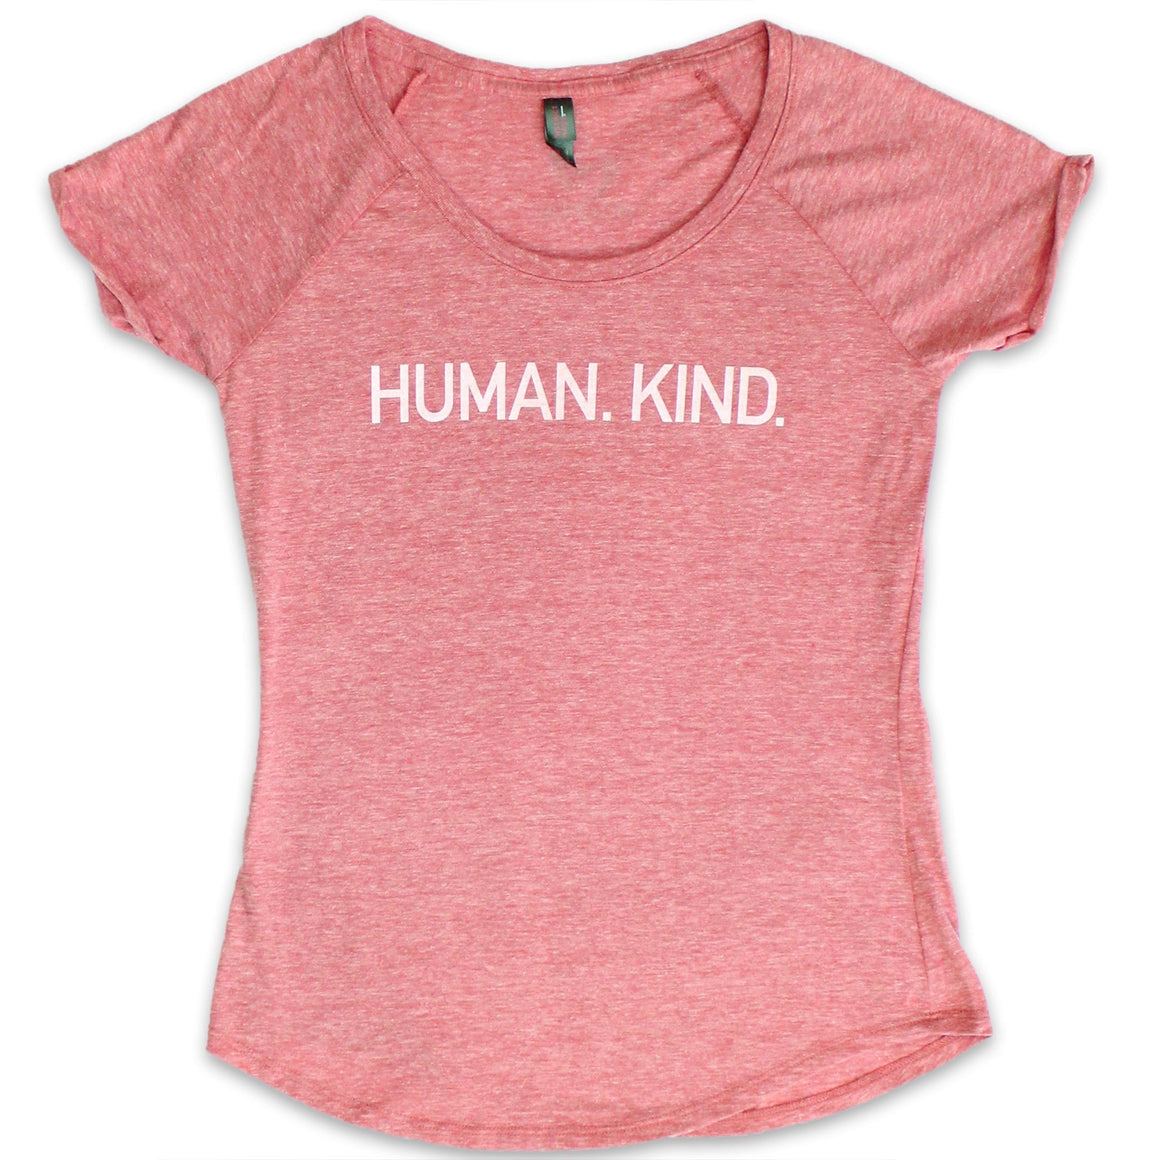 HUMAN.KIND. Red Heather Scoop Neck Tee